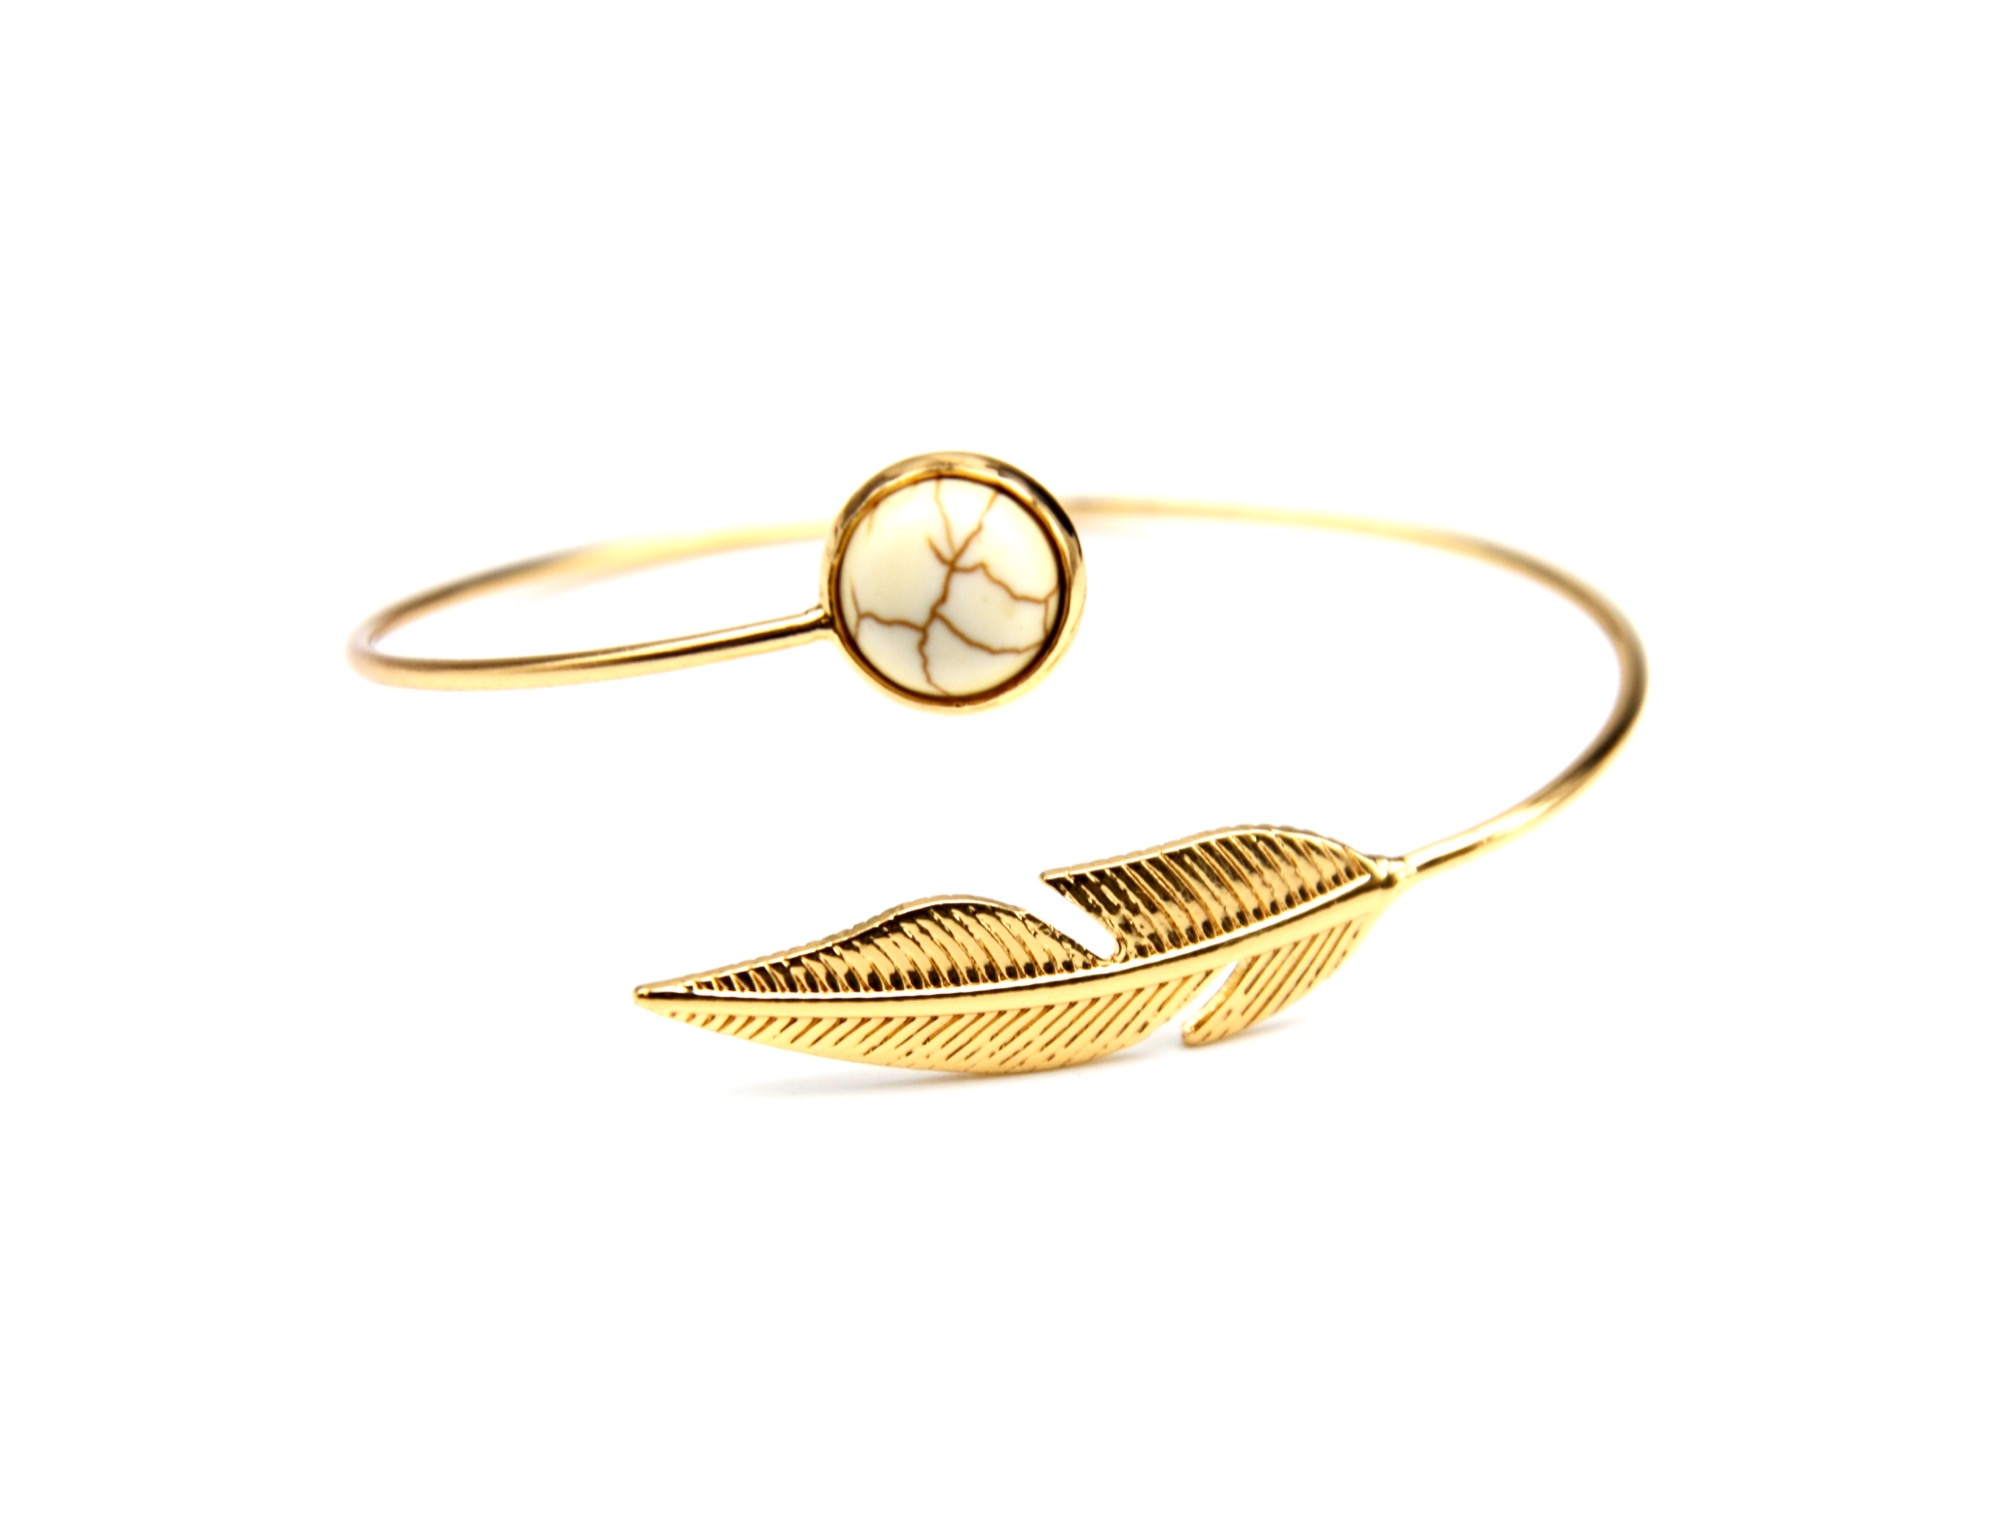 posh gold bangles open shop plants jewellery and leaves img bangle silver